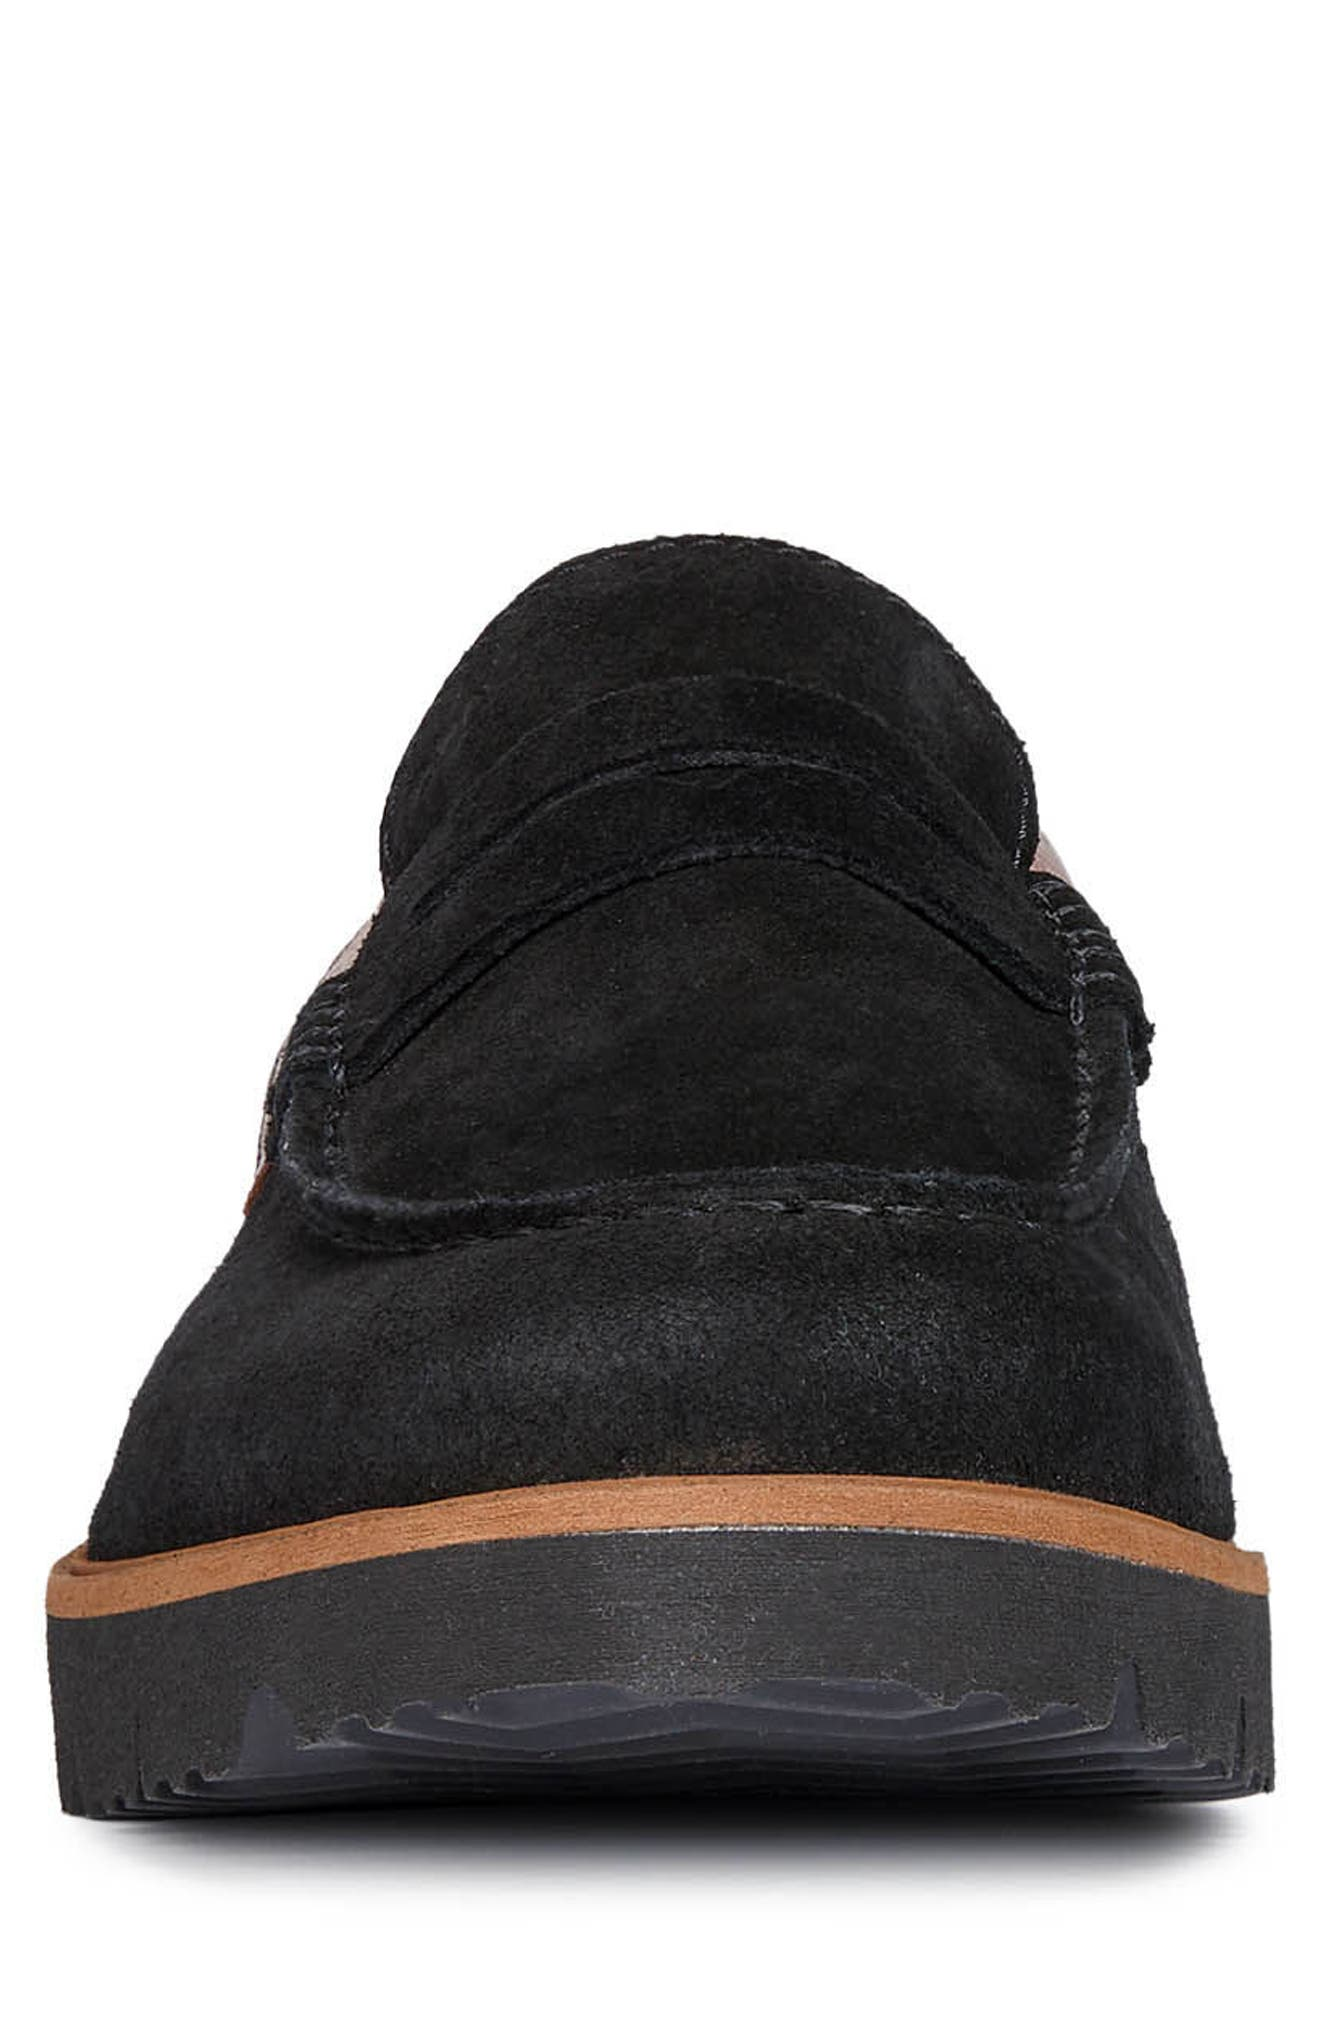 New Pluges 6 Penny Loafer,                             Alternate thumbnail 4, color,                             BLACK/ BROWN LEATHER